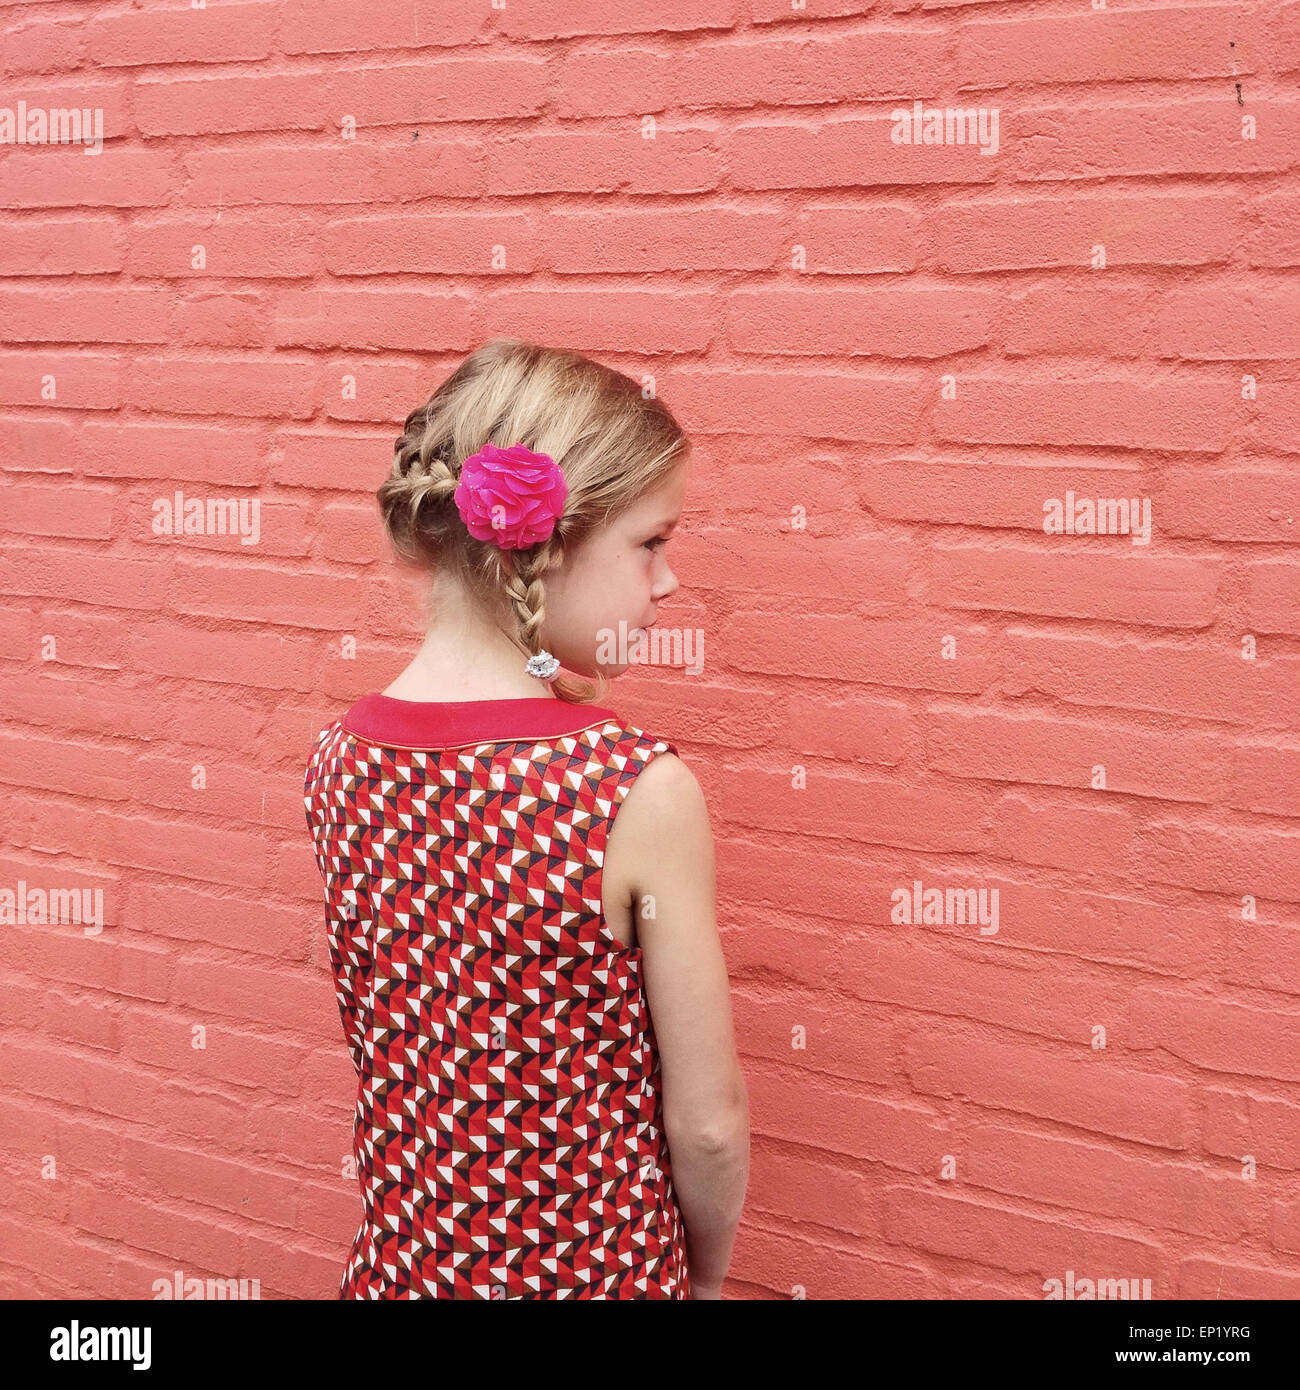 Side view of a girl with a plait and a flower in her hair - Stock Image